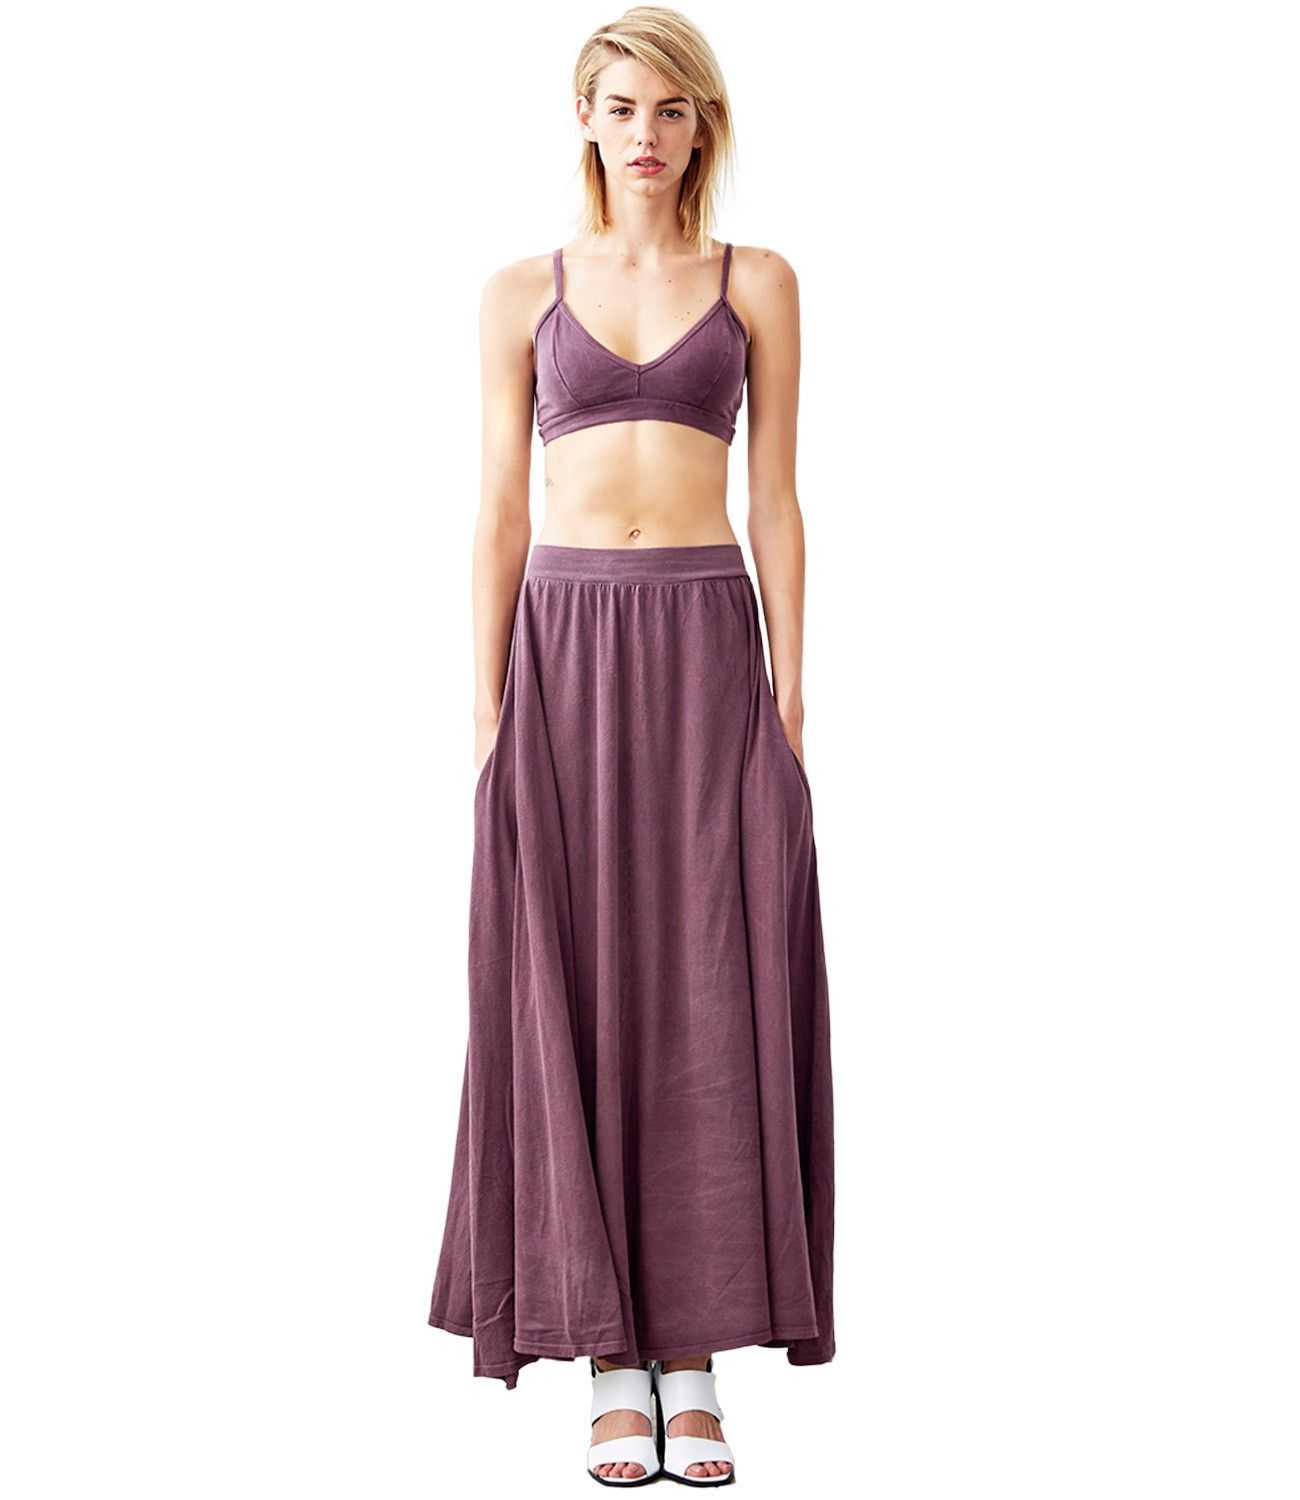 186f53da7365  100 for this ethical maxi skirt with veggie dyes. Cotton is grown in  California!